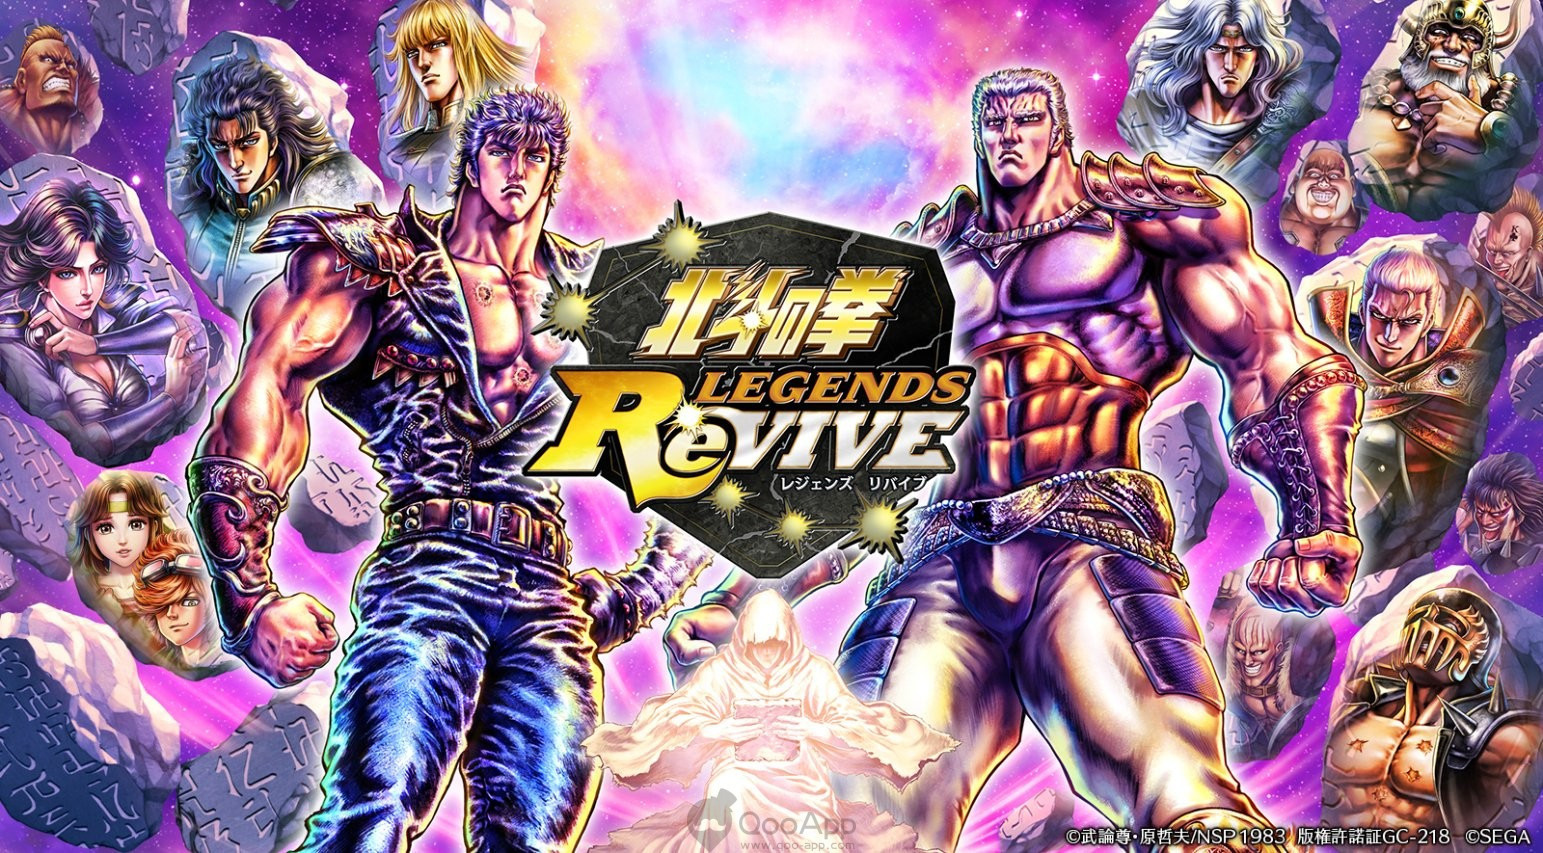 Legends Revive! A New Fist of the North Star Mobile Game Set for 2019